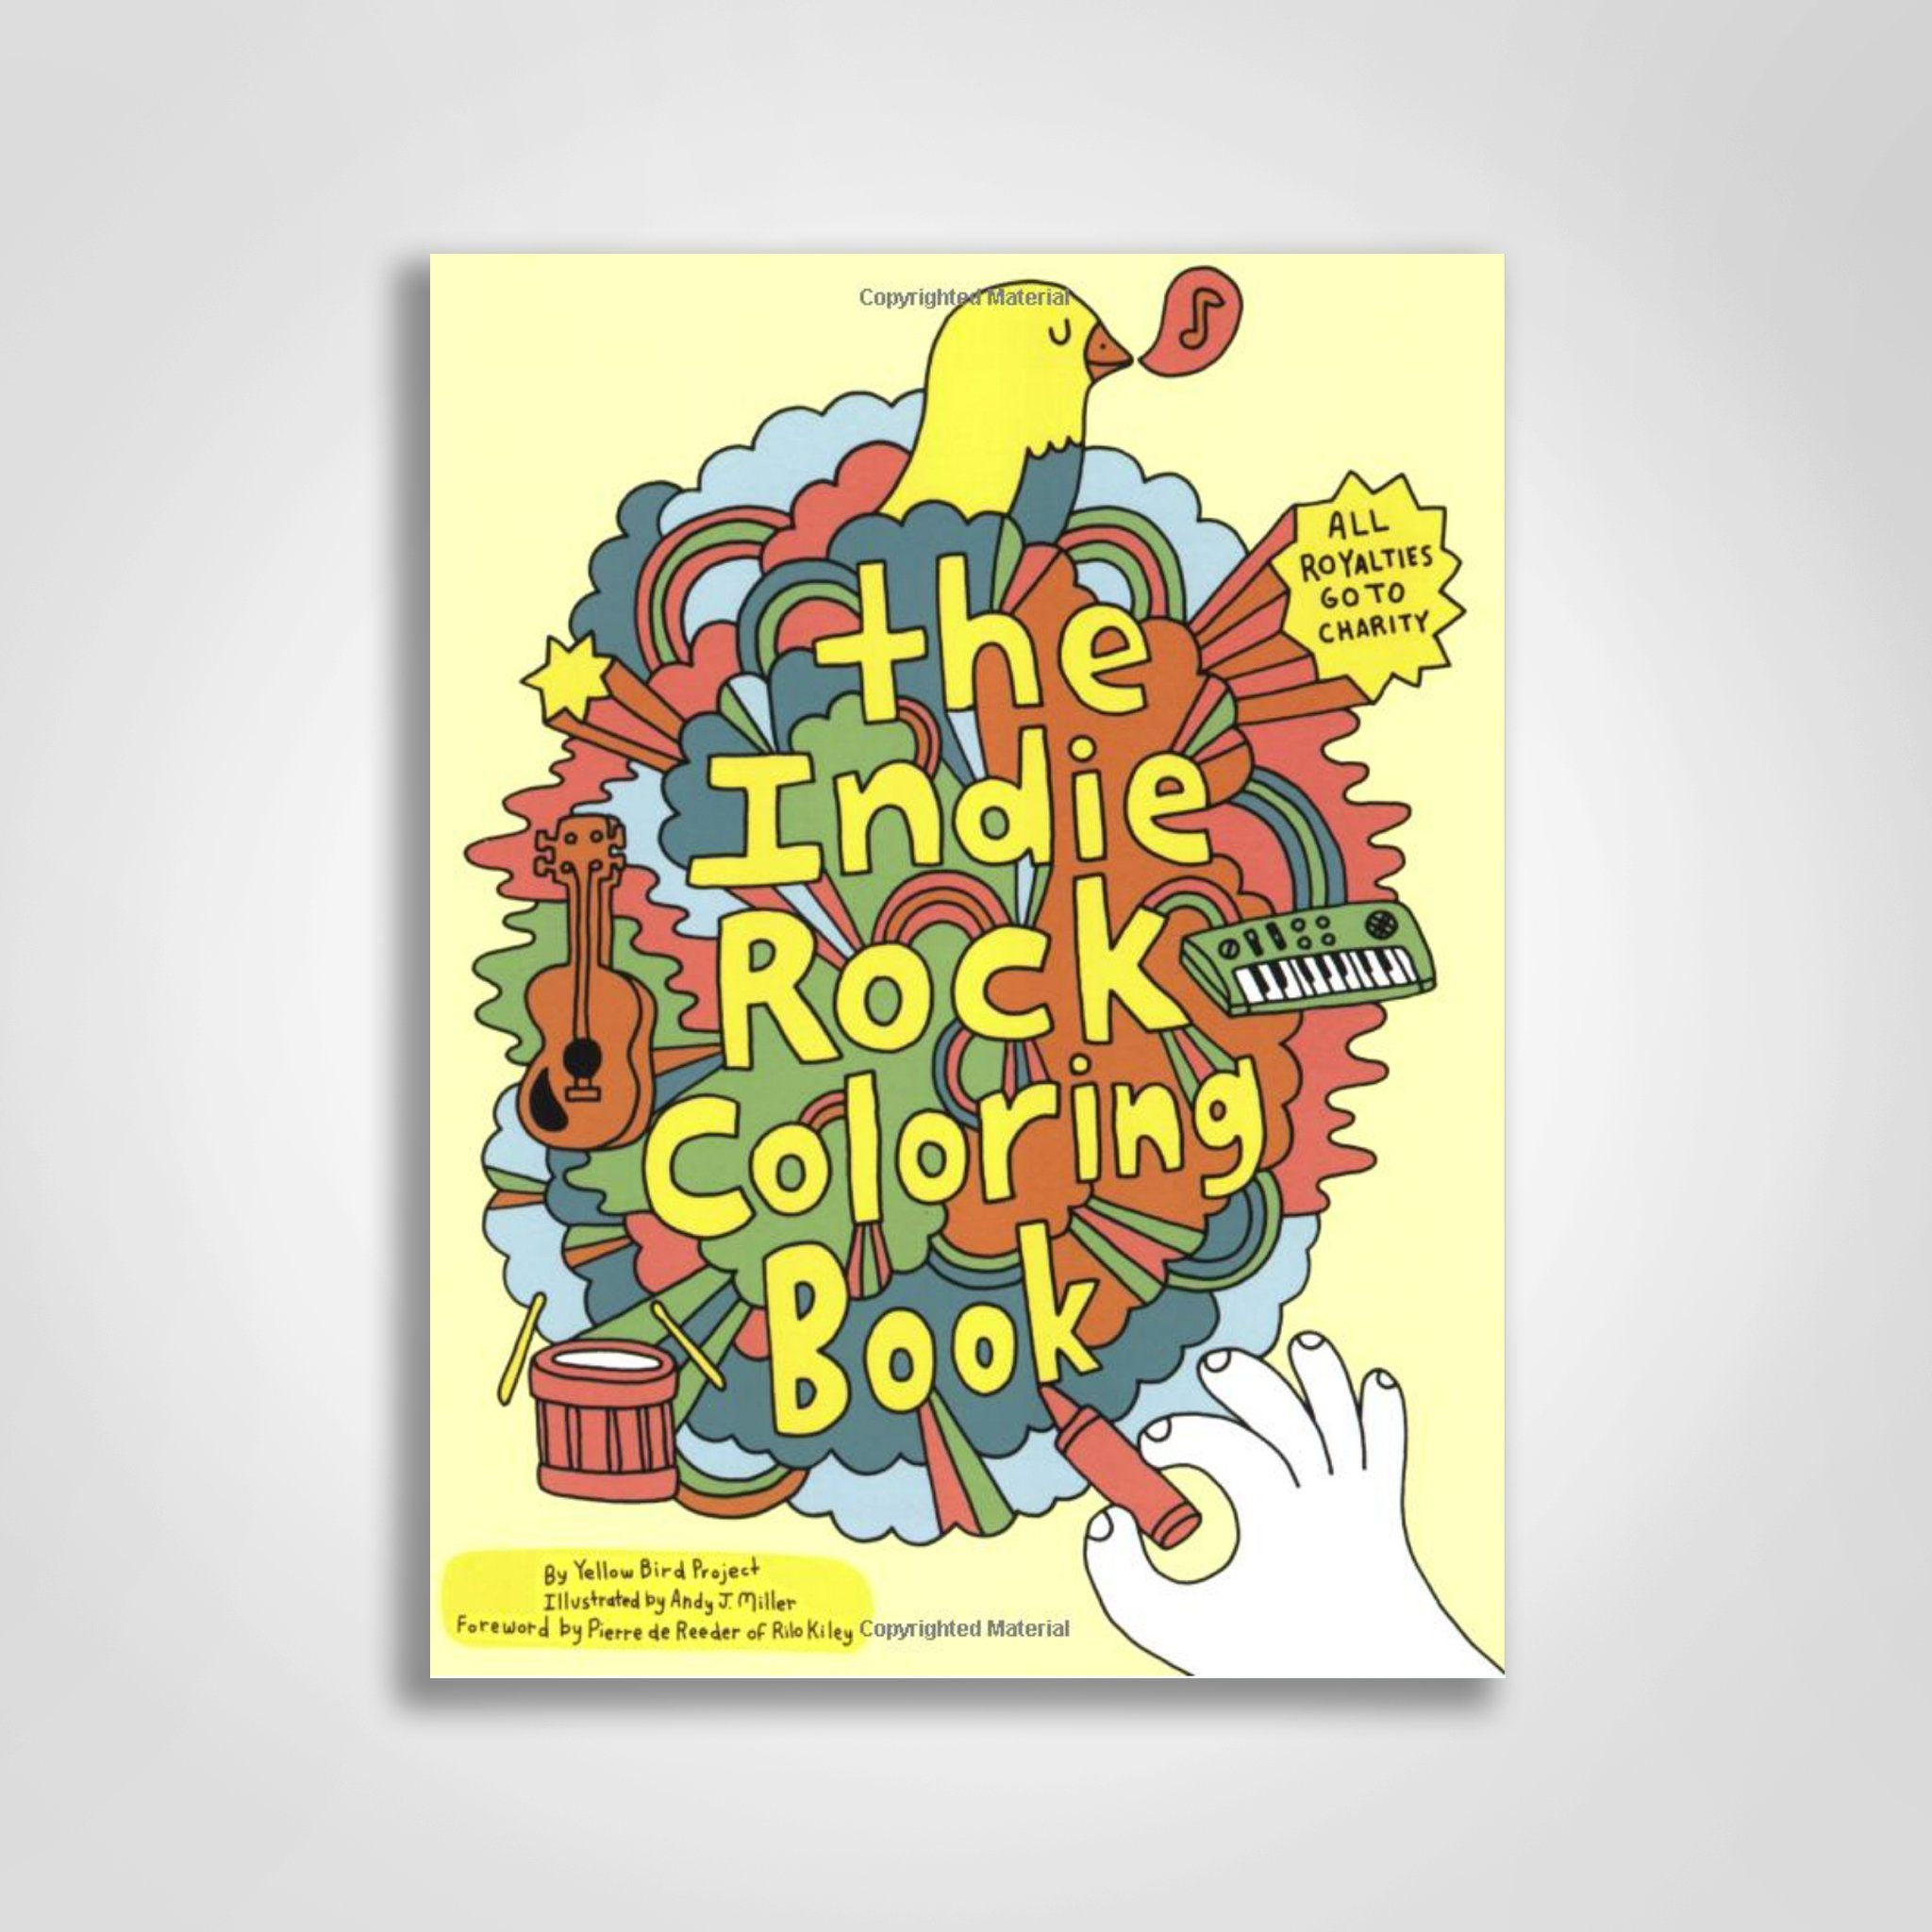 Cool As Hell Indie Rock Coloring Book